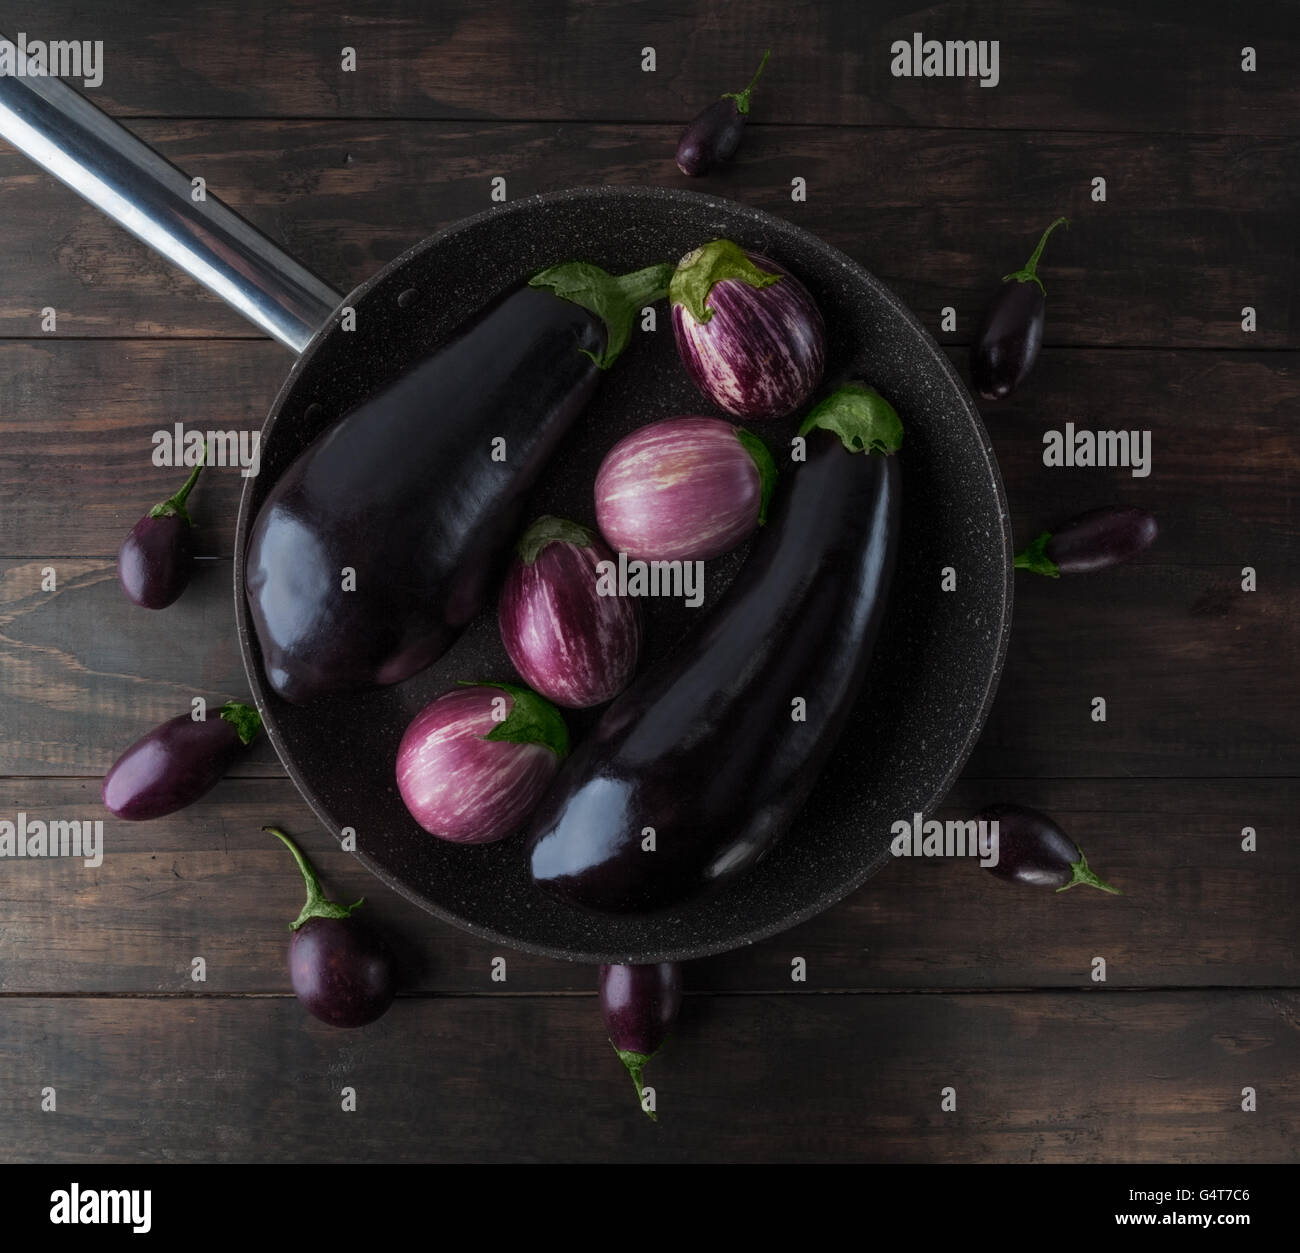 Eggplants arranged on frying pan placed on wooden table. Top view. - Stock Image